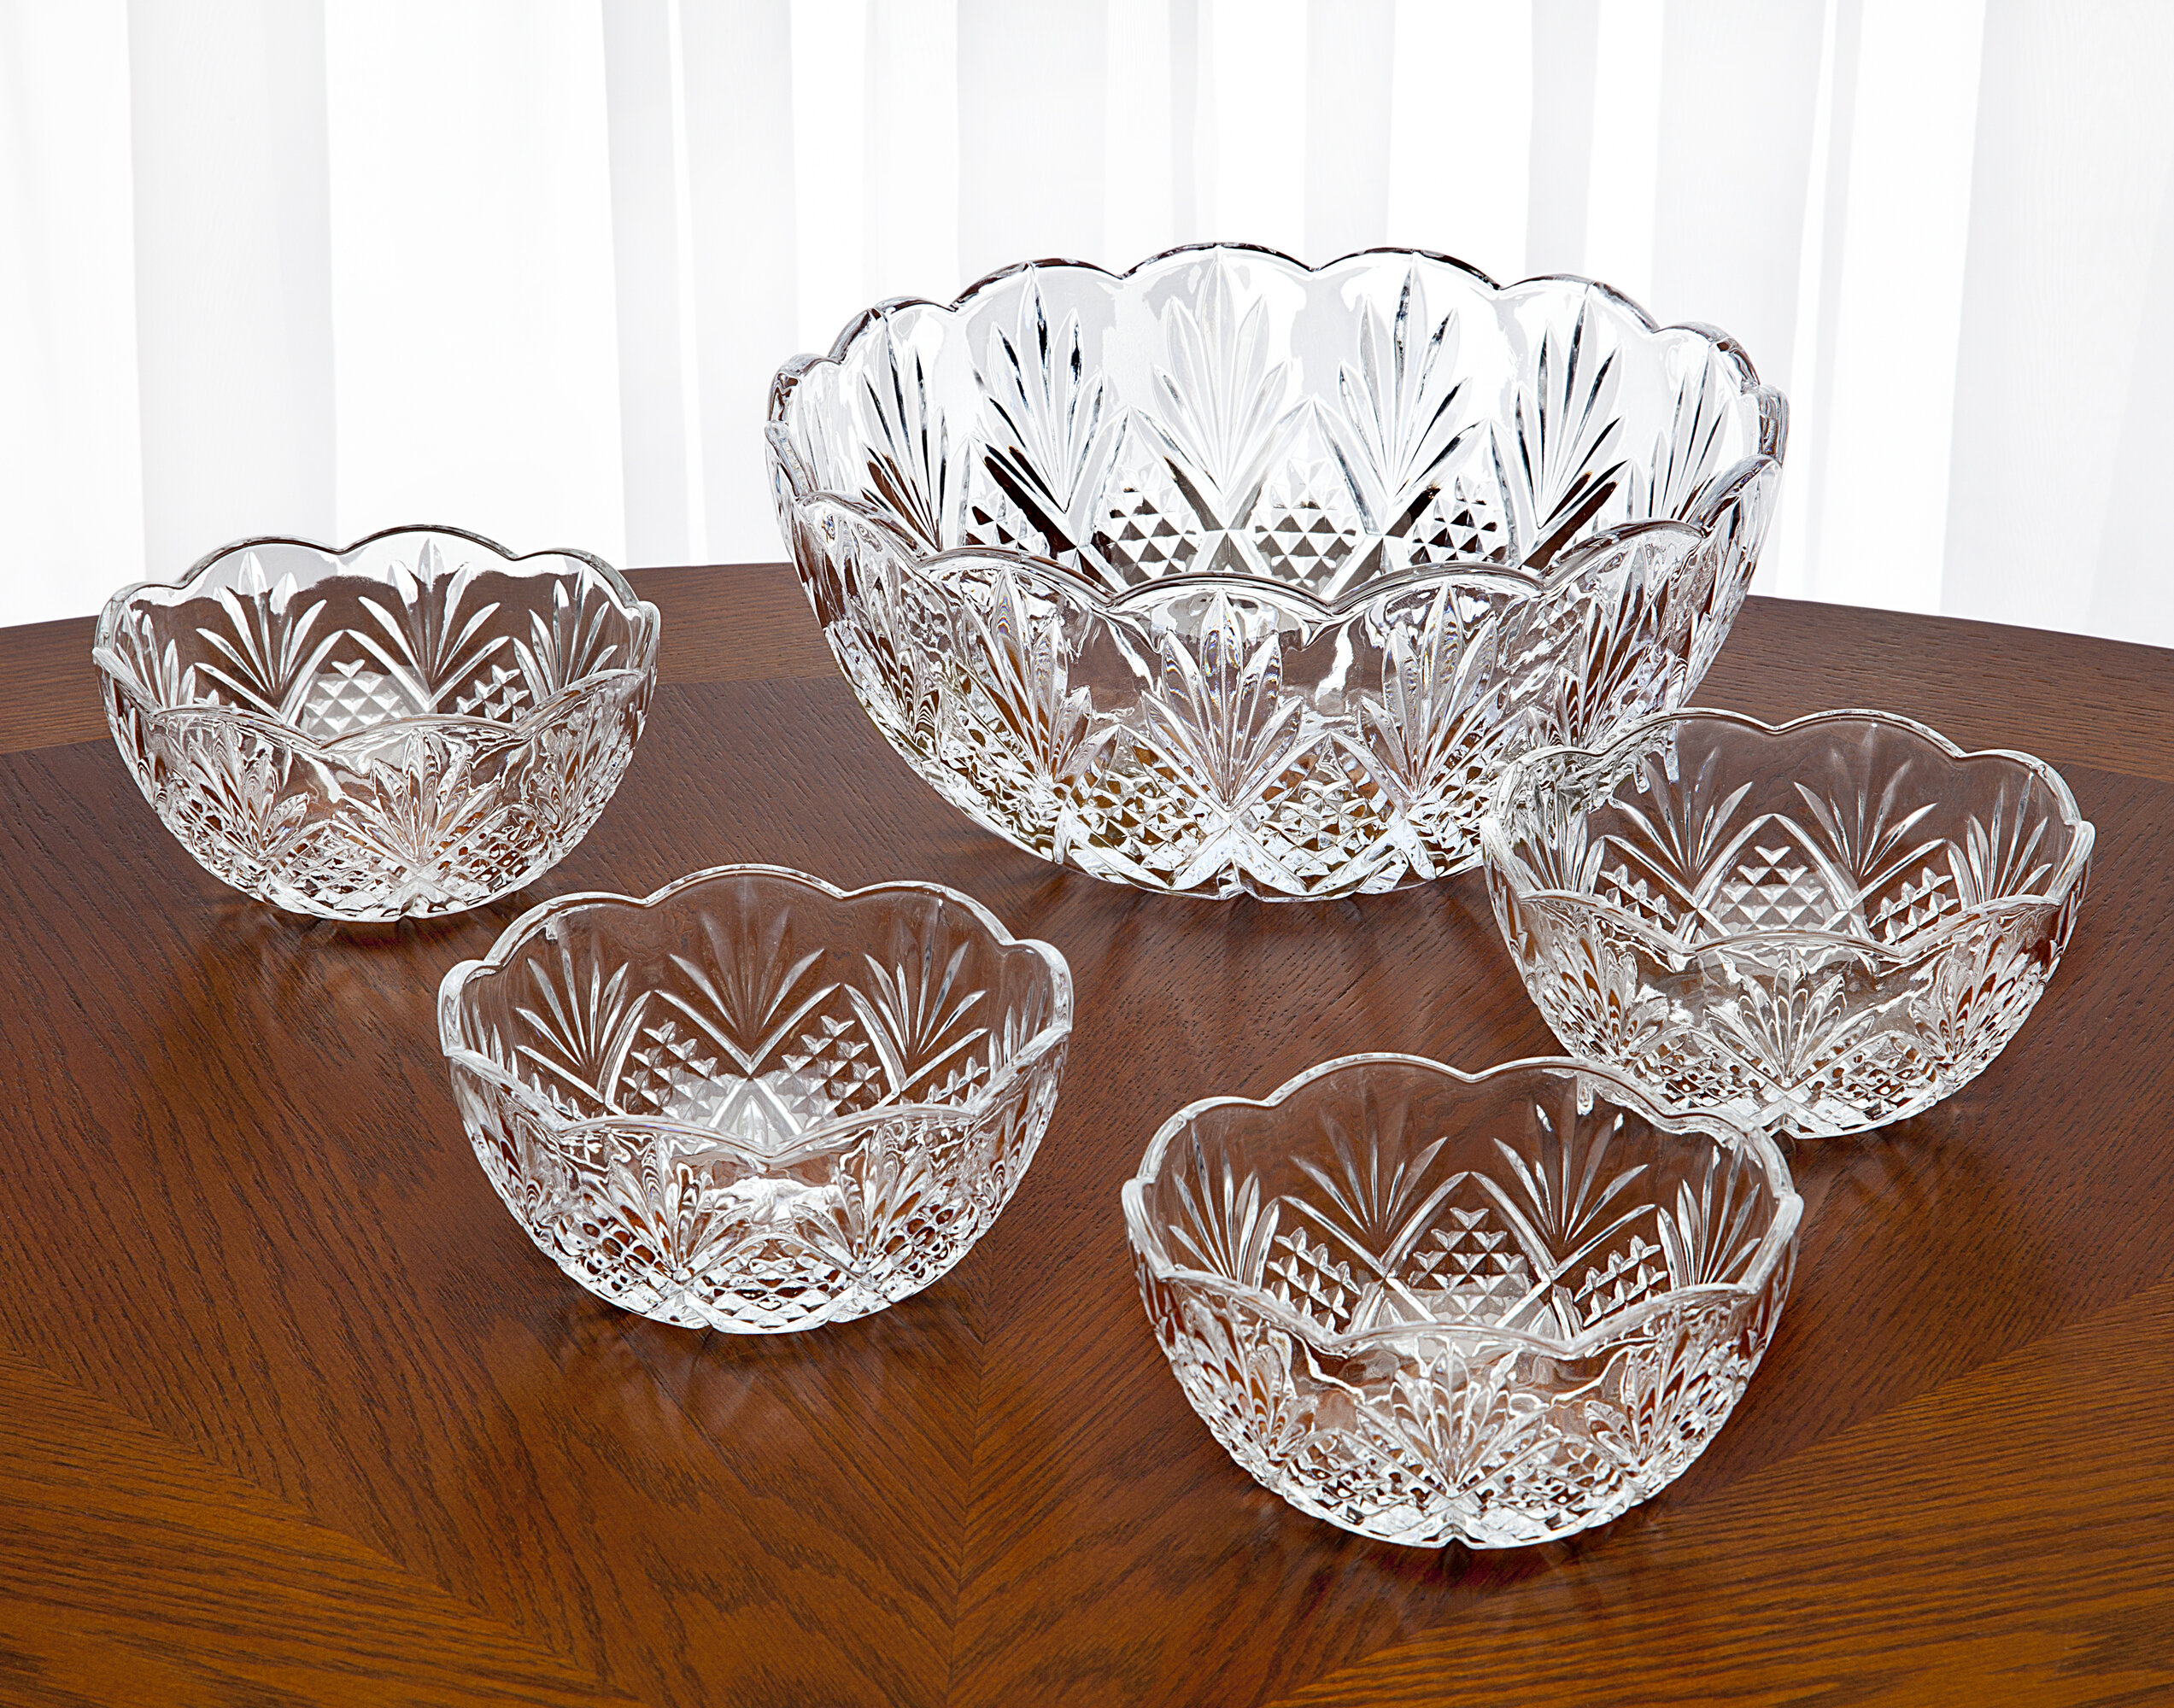 Godinger Silver Art Co Dublin 5 Piece Serving Bowl Set Reviews Wayfair